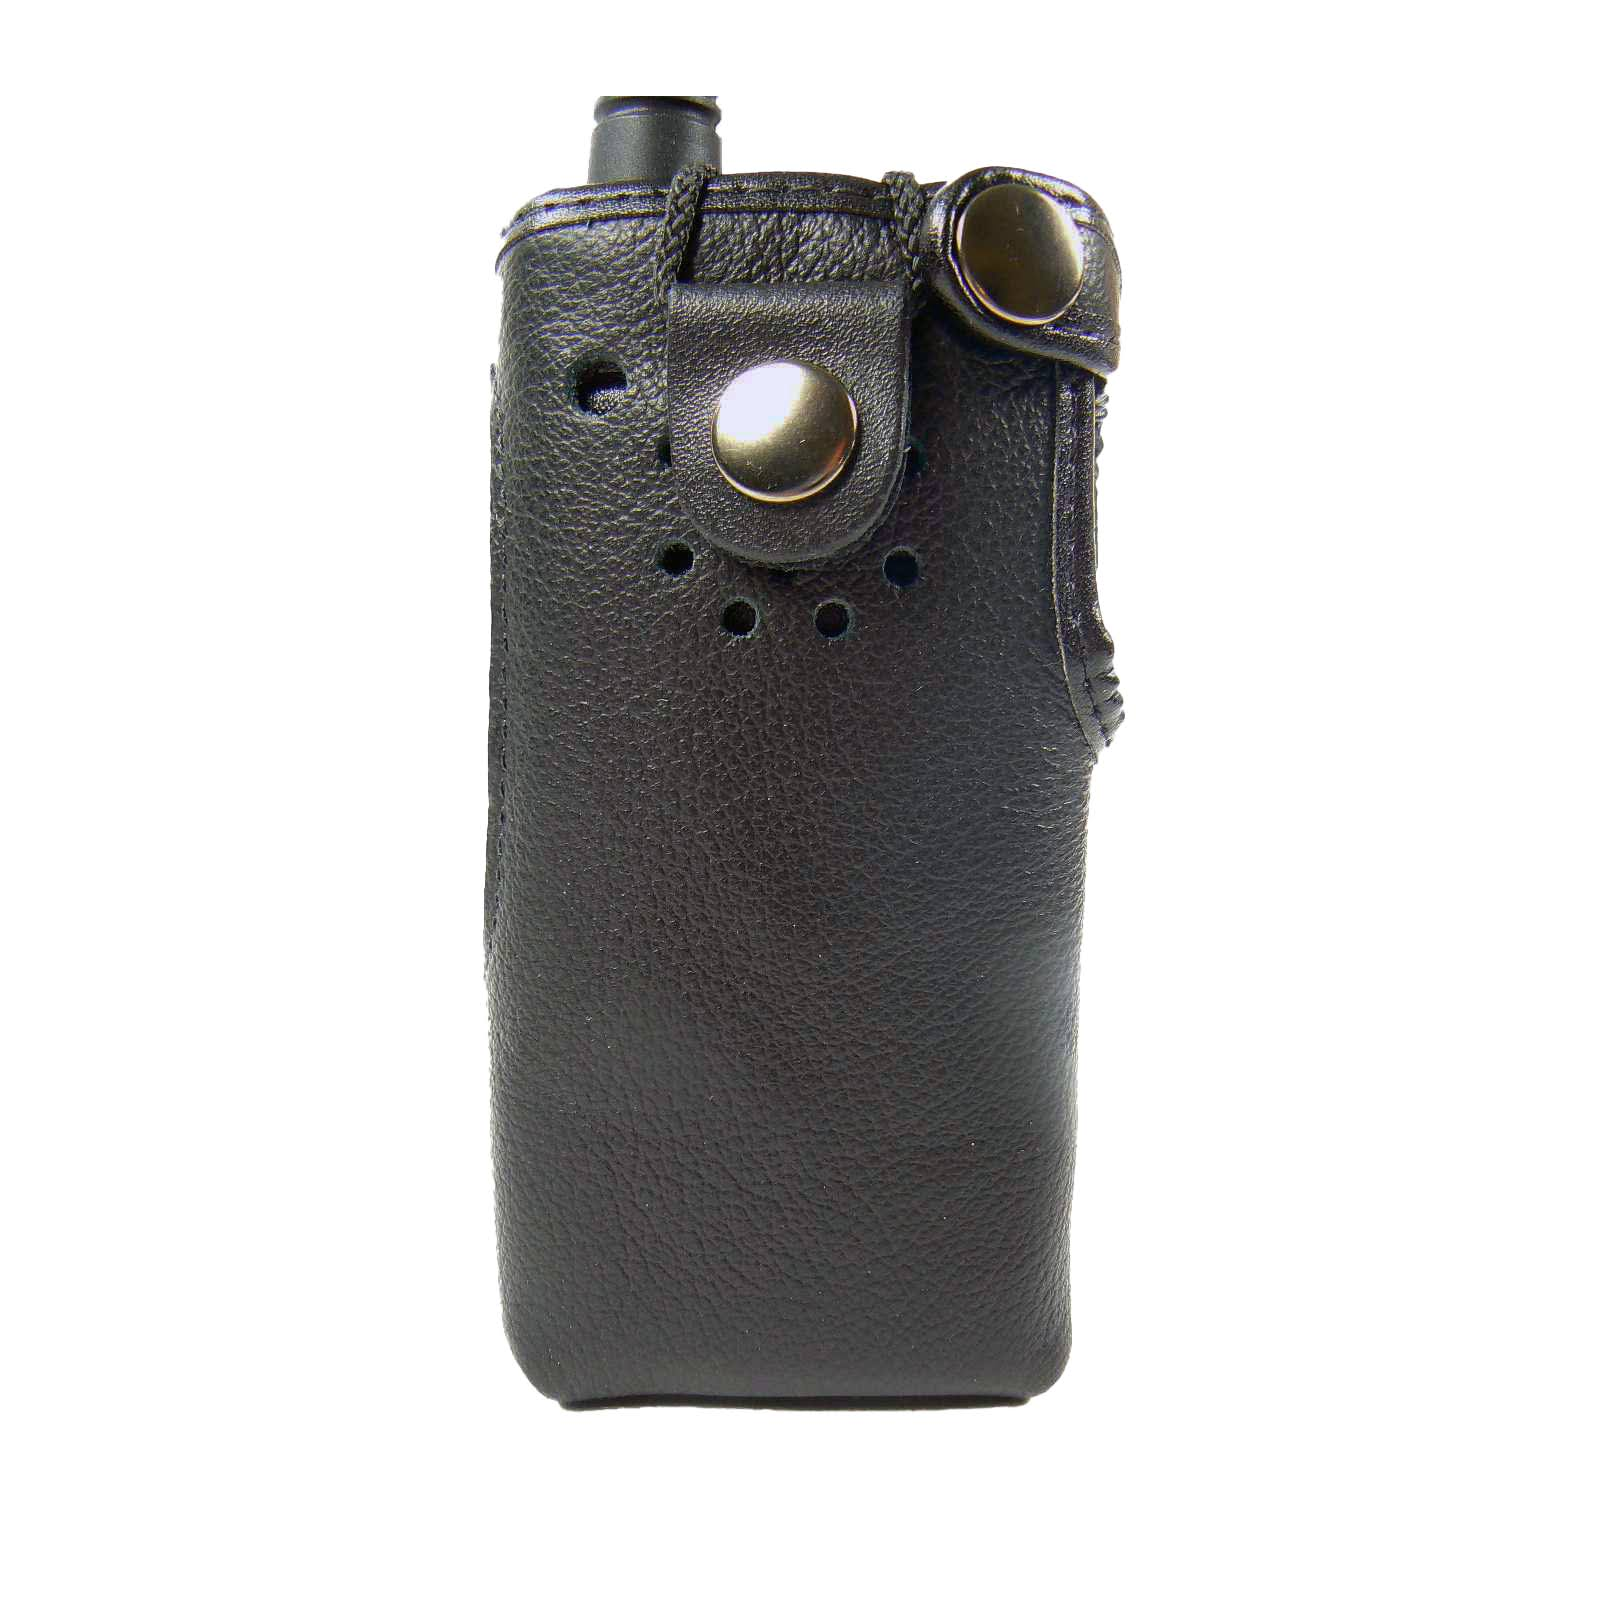 Motorola XTNiD Radio Case Leather with clip